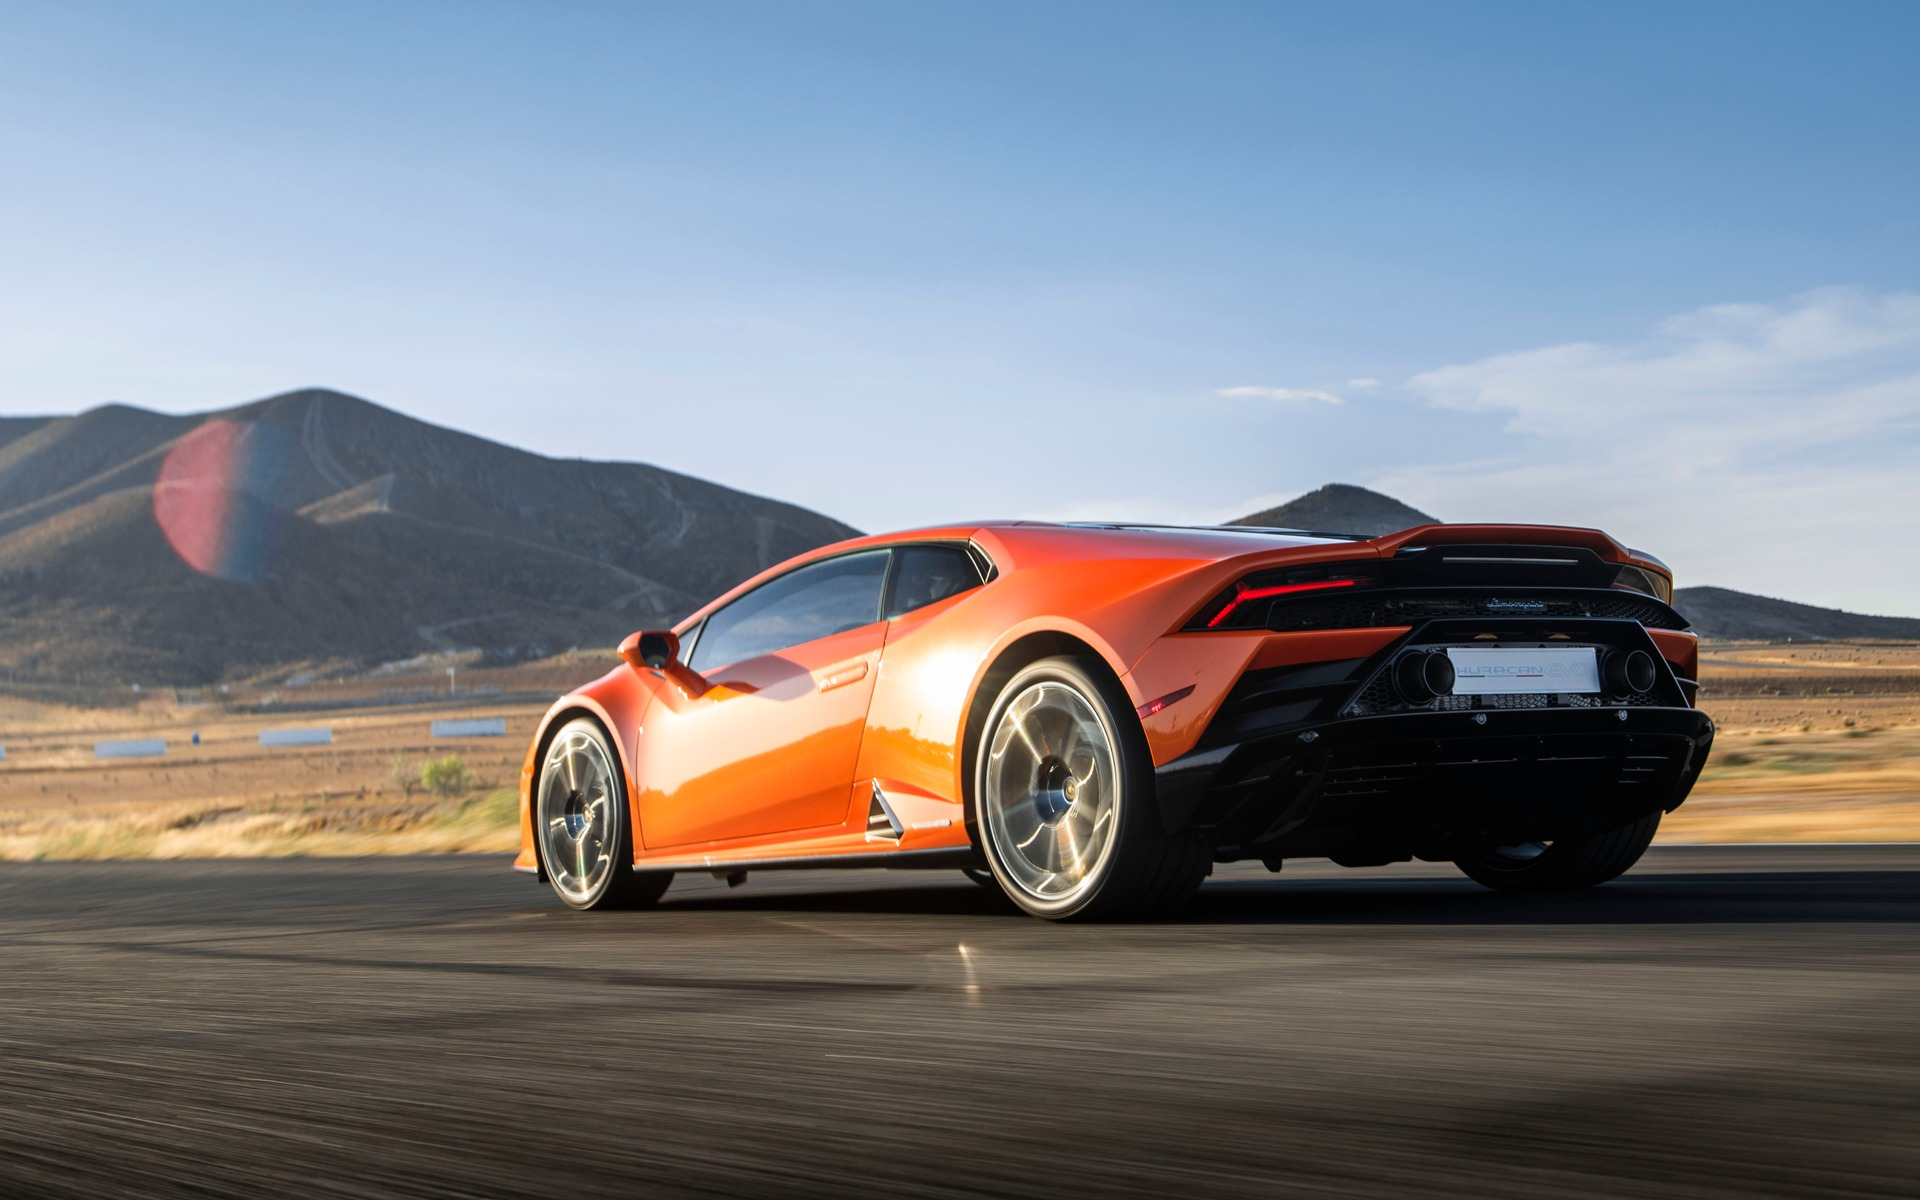 2020 Lamborghini Huracan Evo Electronic Driven Performance